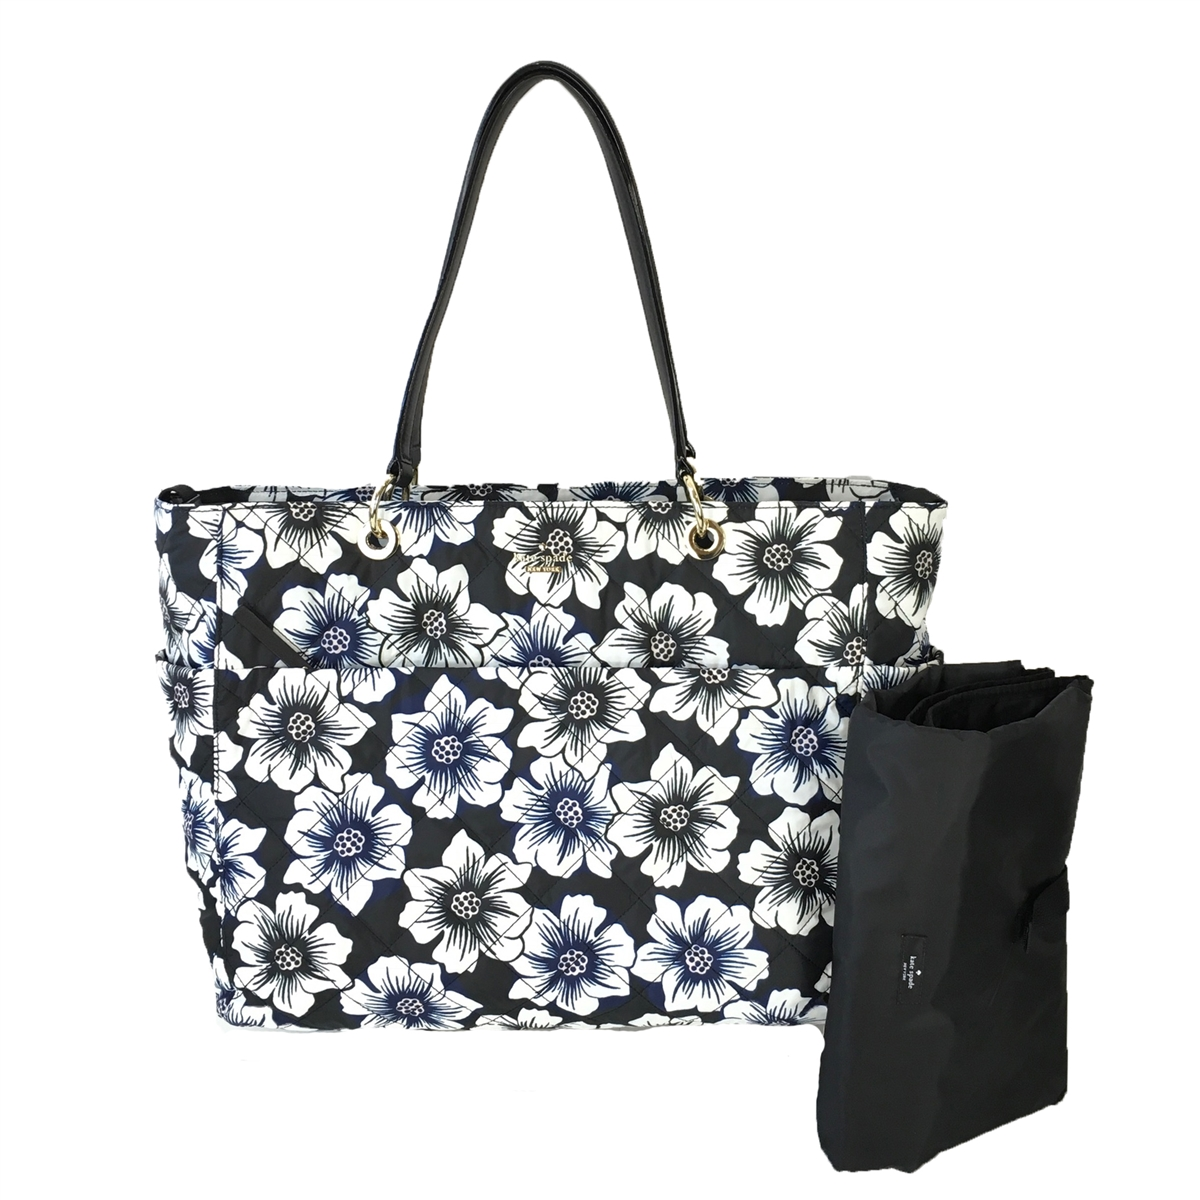 Kate Spade Emerson Place Floral Print Pauline Baby Bag Black Multi